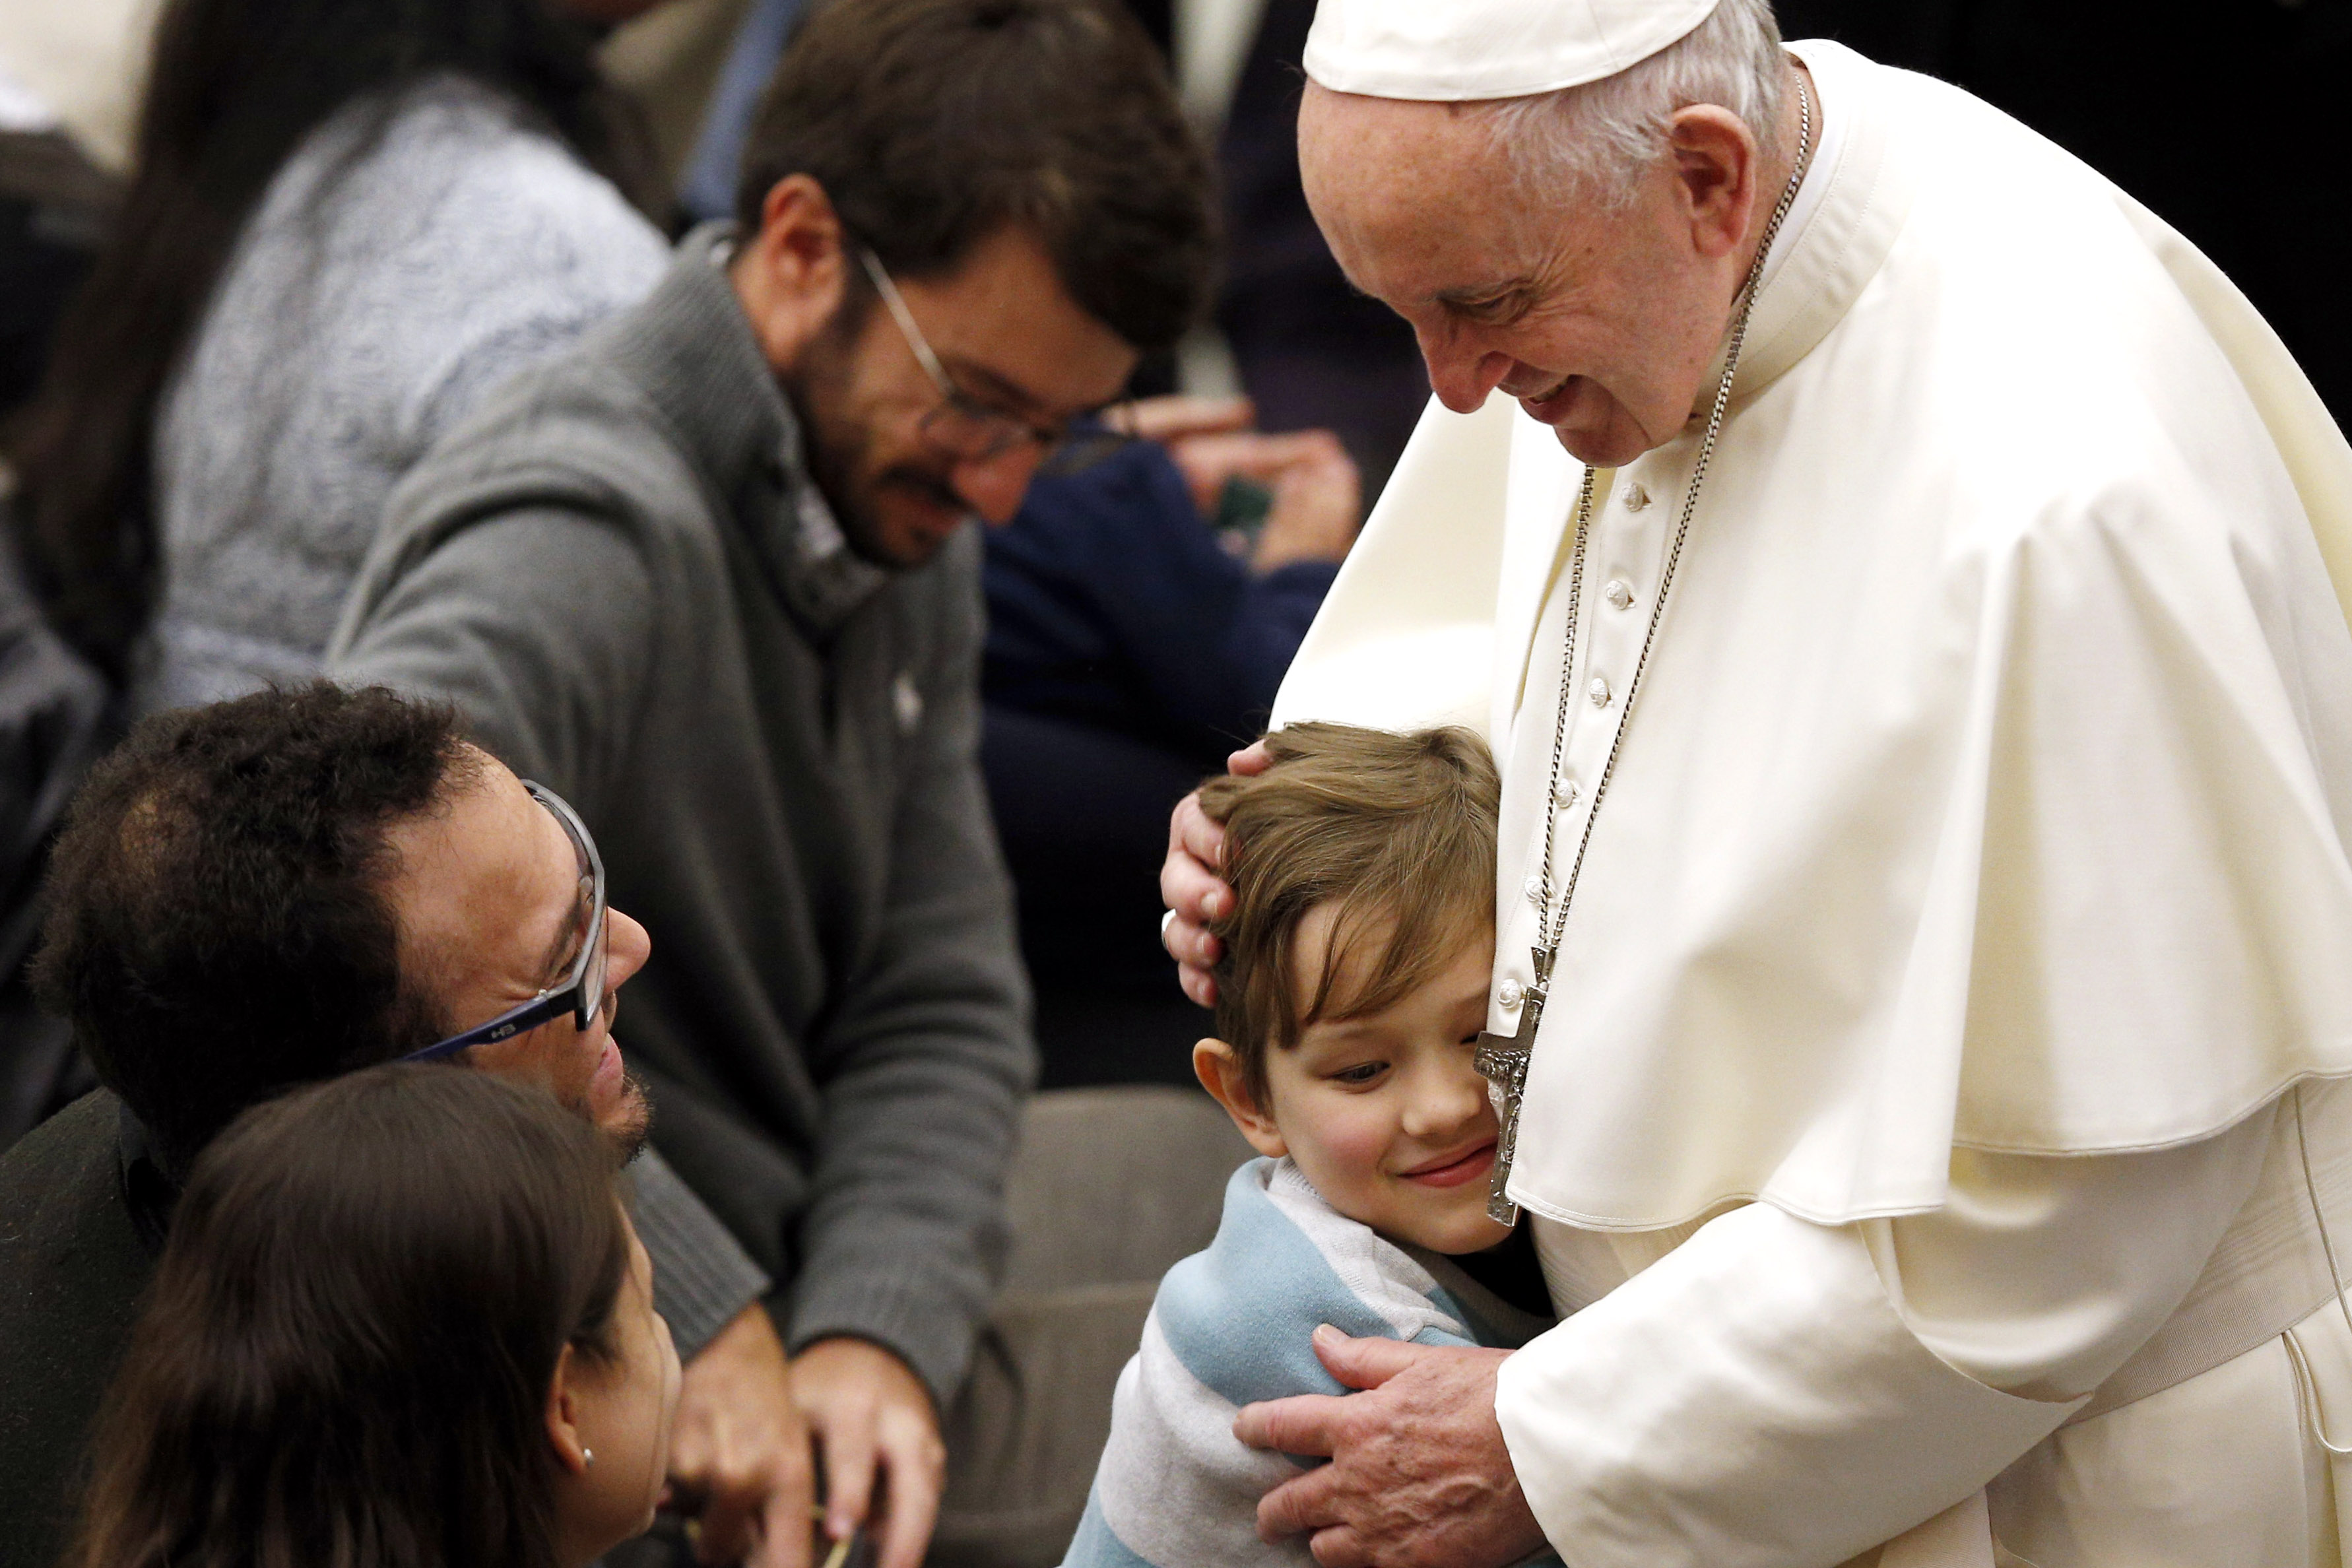 A boy embraces Pope Francis during his general audience in Paul VI hall at the Vatican ON 9 January 2019. Photo: CNS/Paul Haring.